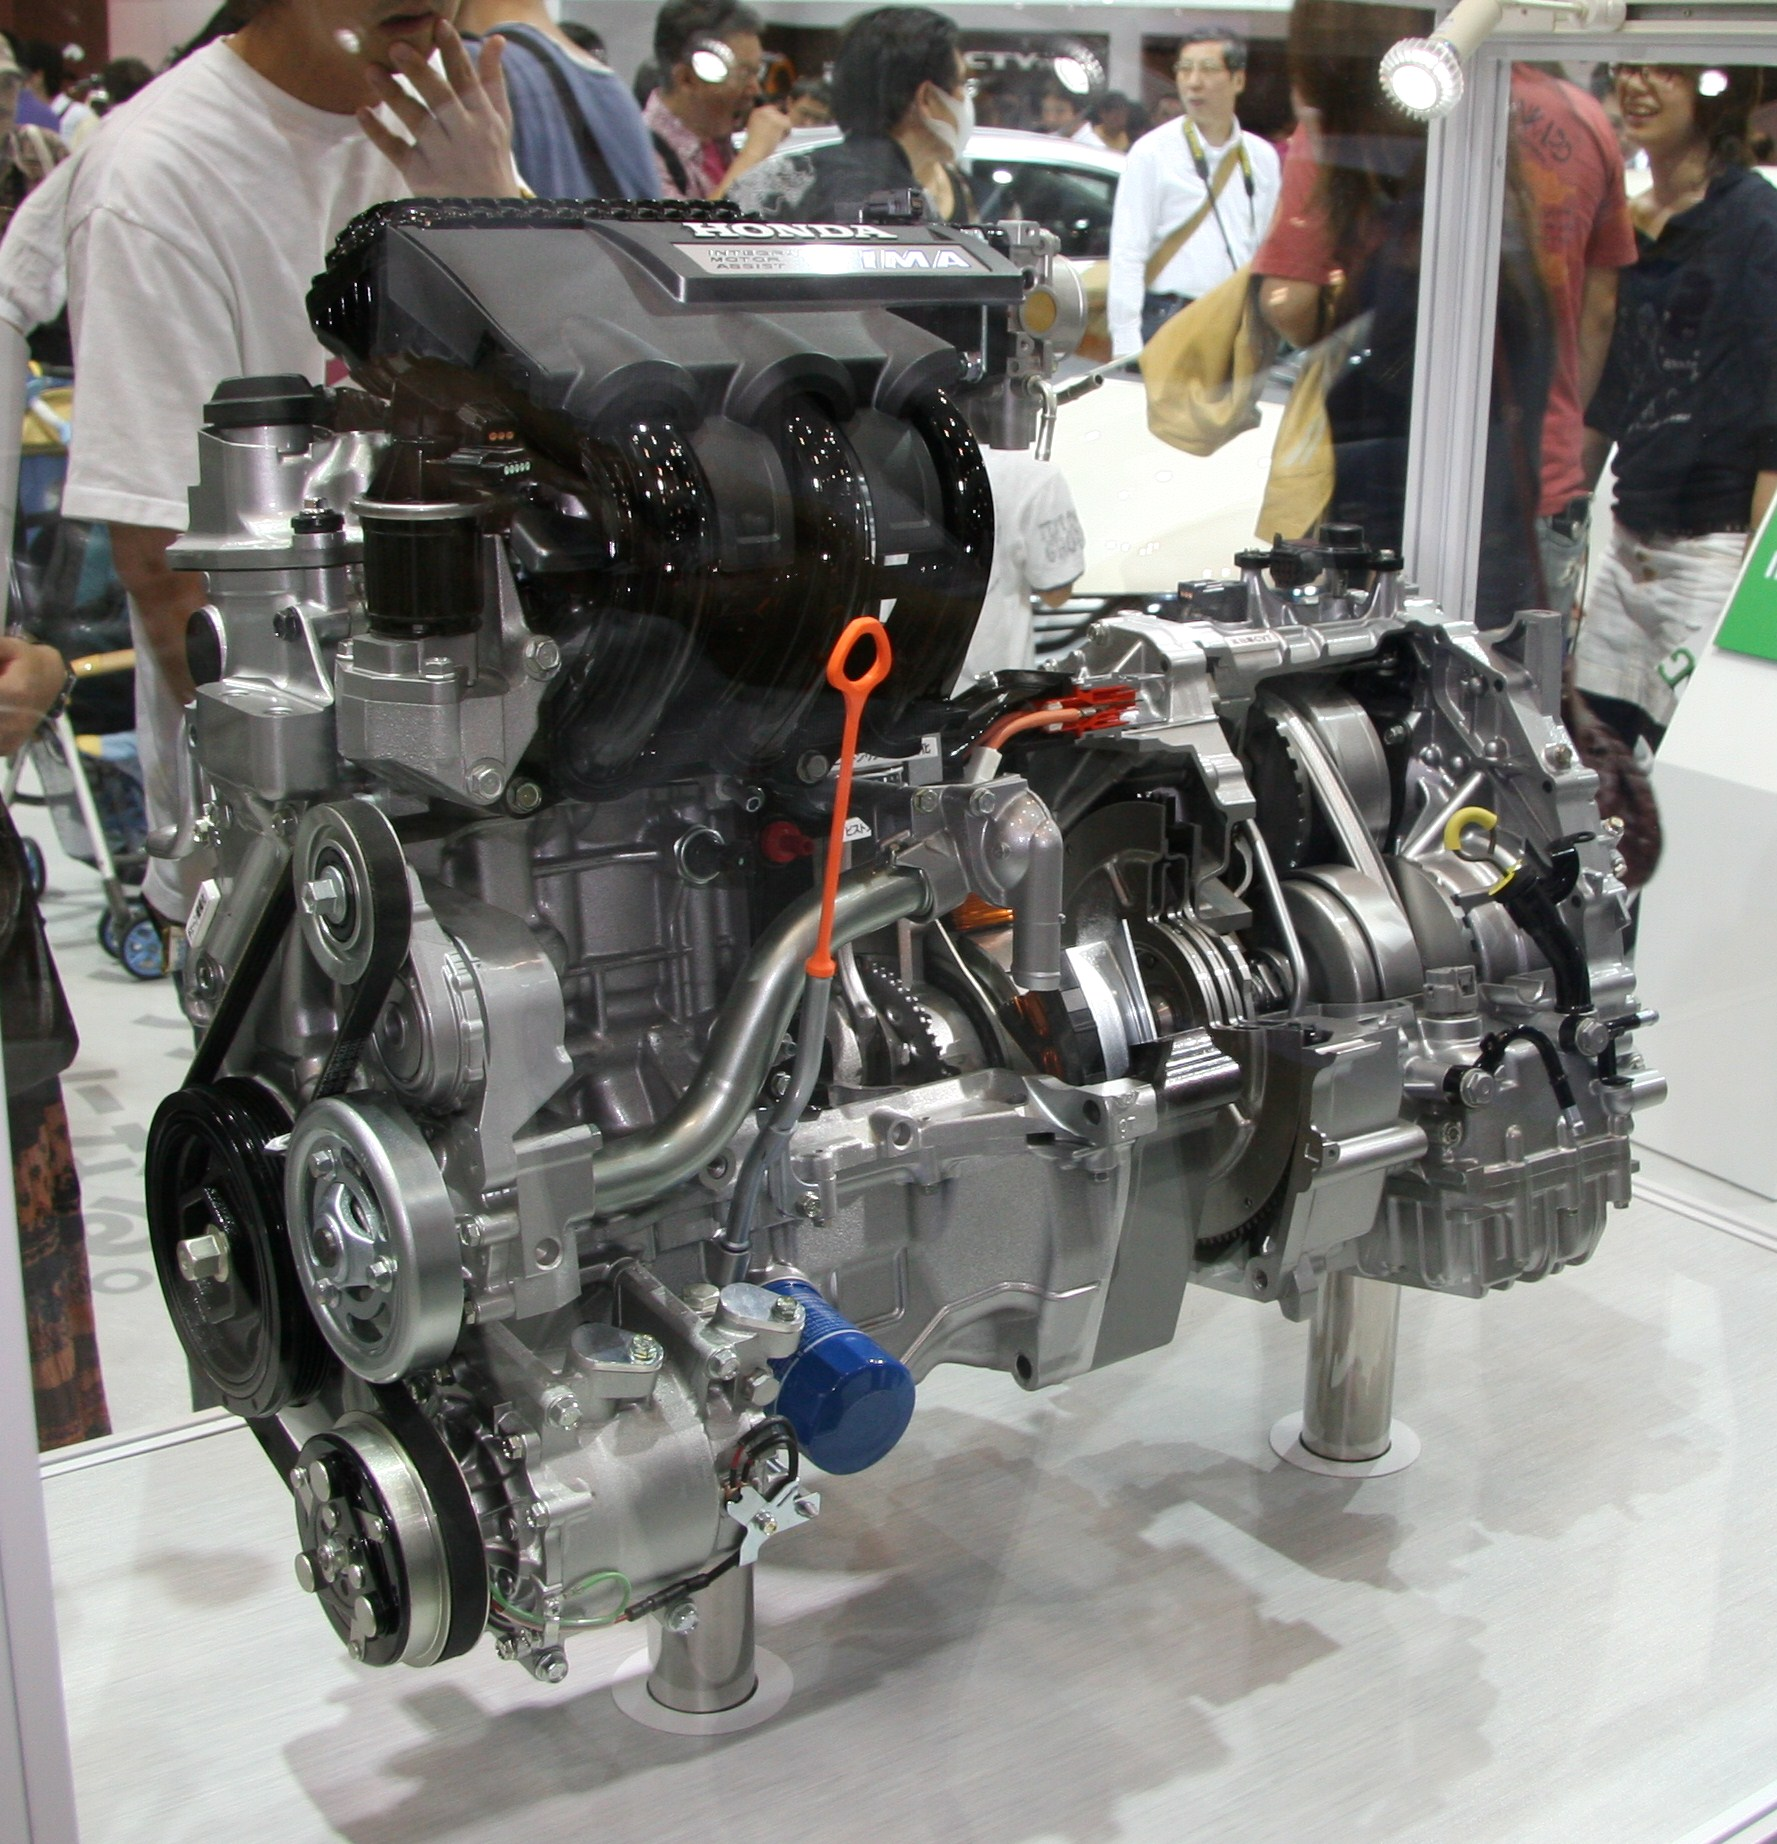 Honda Insight Wikipedia Motor Stop Start Circuit Second Generation Ima Powertrain Engine And Transmission